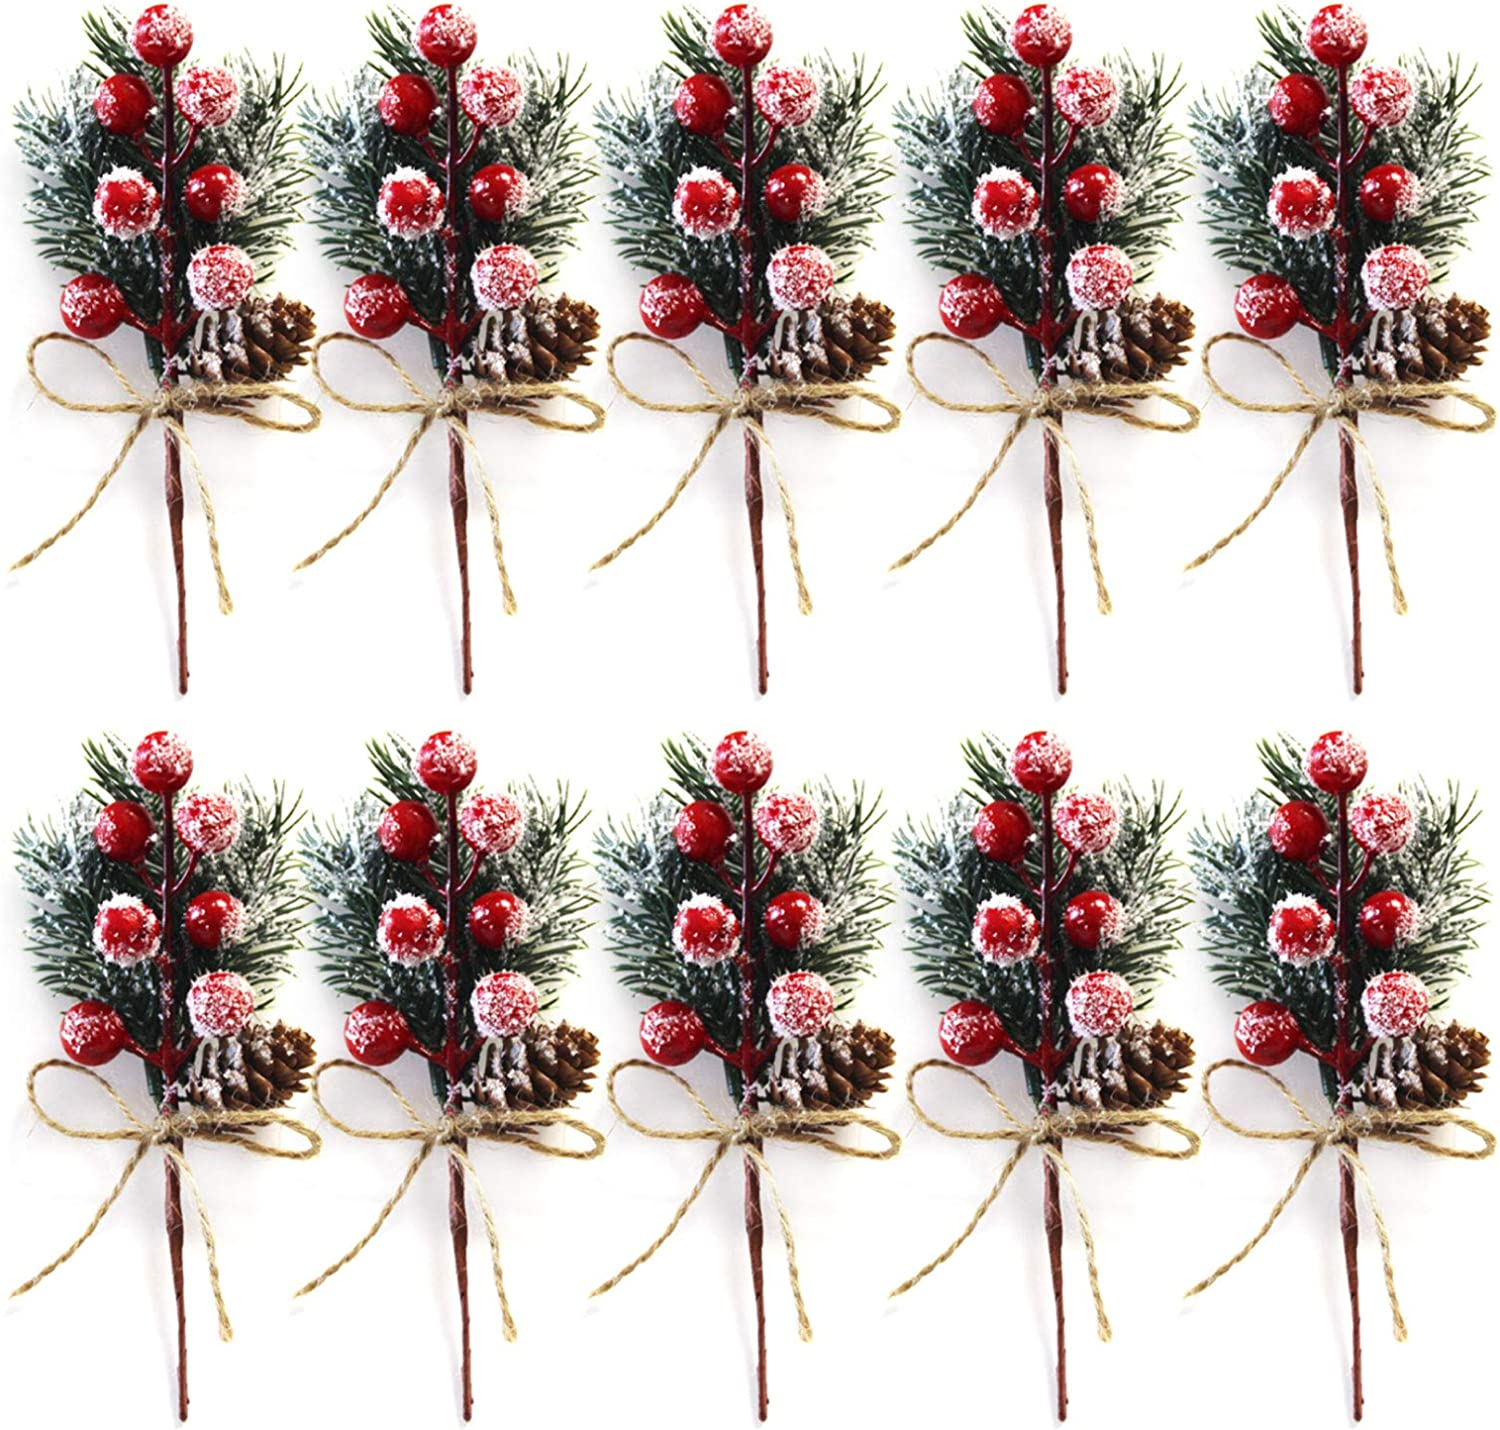 Red Berry Stems Pine Many popular brands Branches Christmas Colorado Springs Mall Evergreen